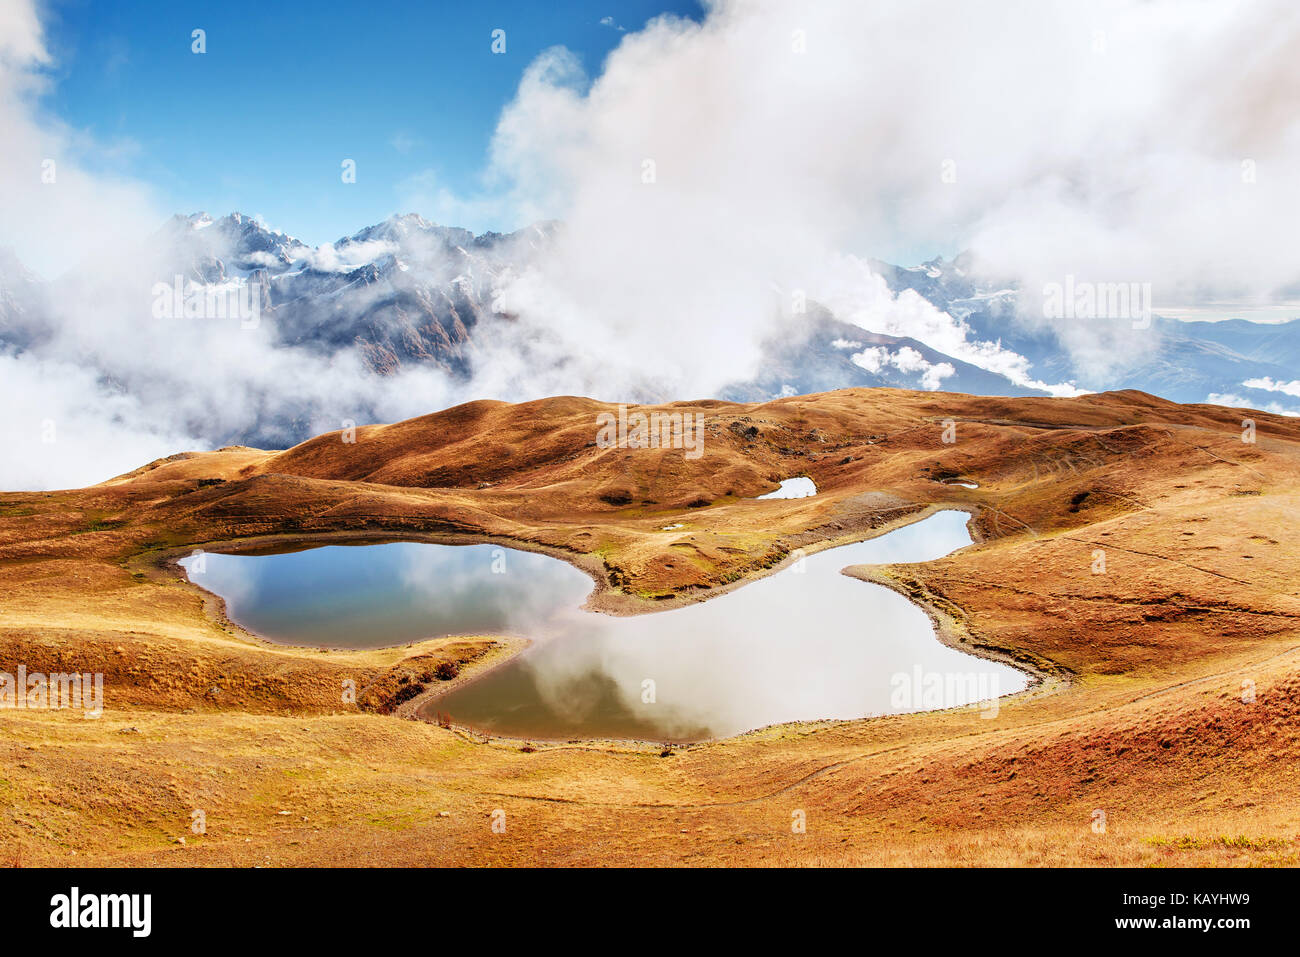 Koruldi mountain lake. Upper Svaneti, Georgia, Europe. Caucasus mountains. - Stock Image